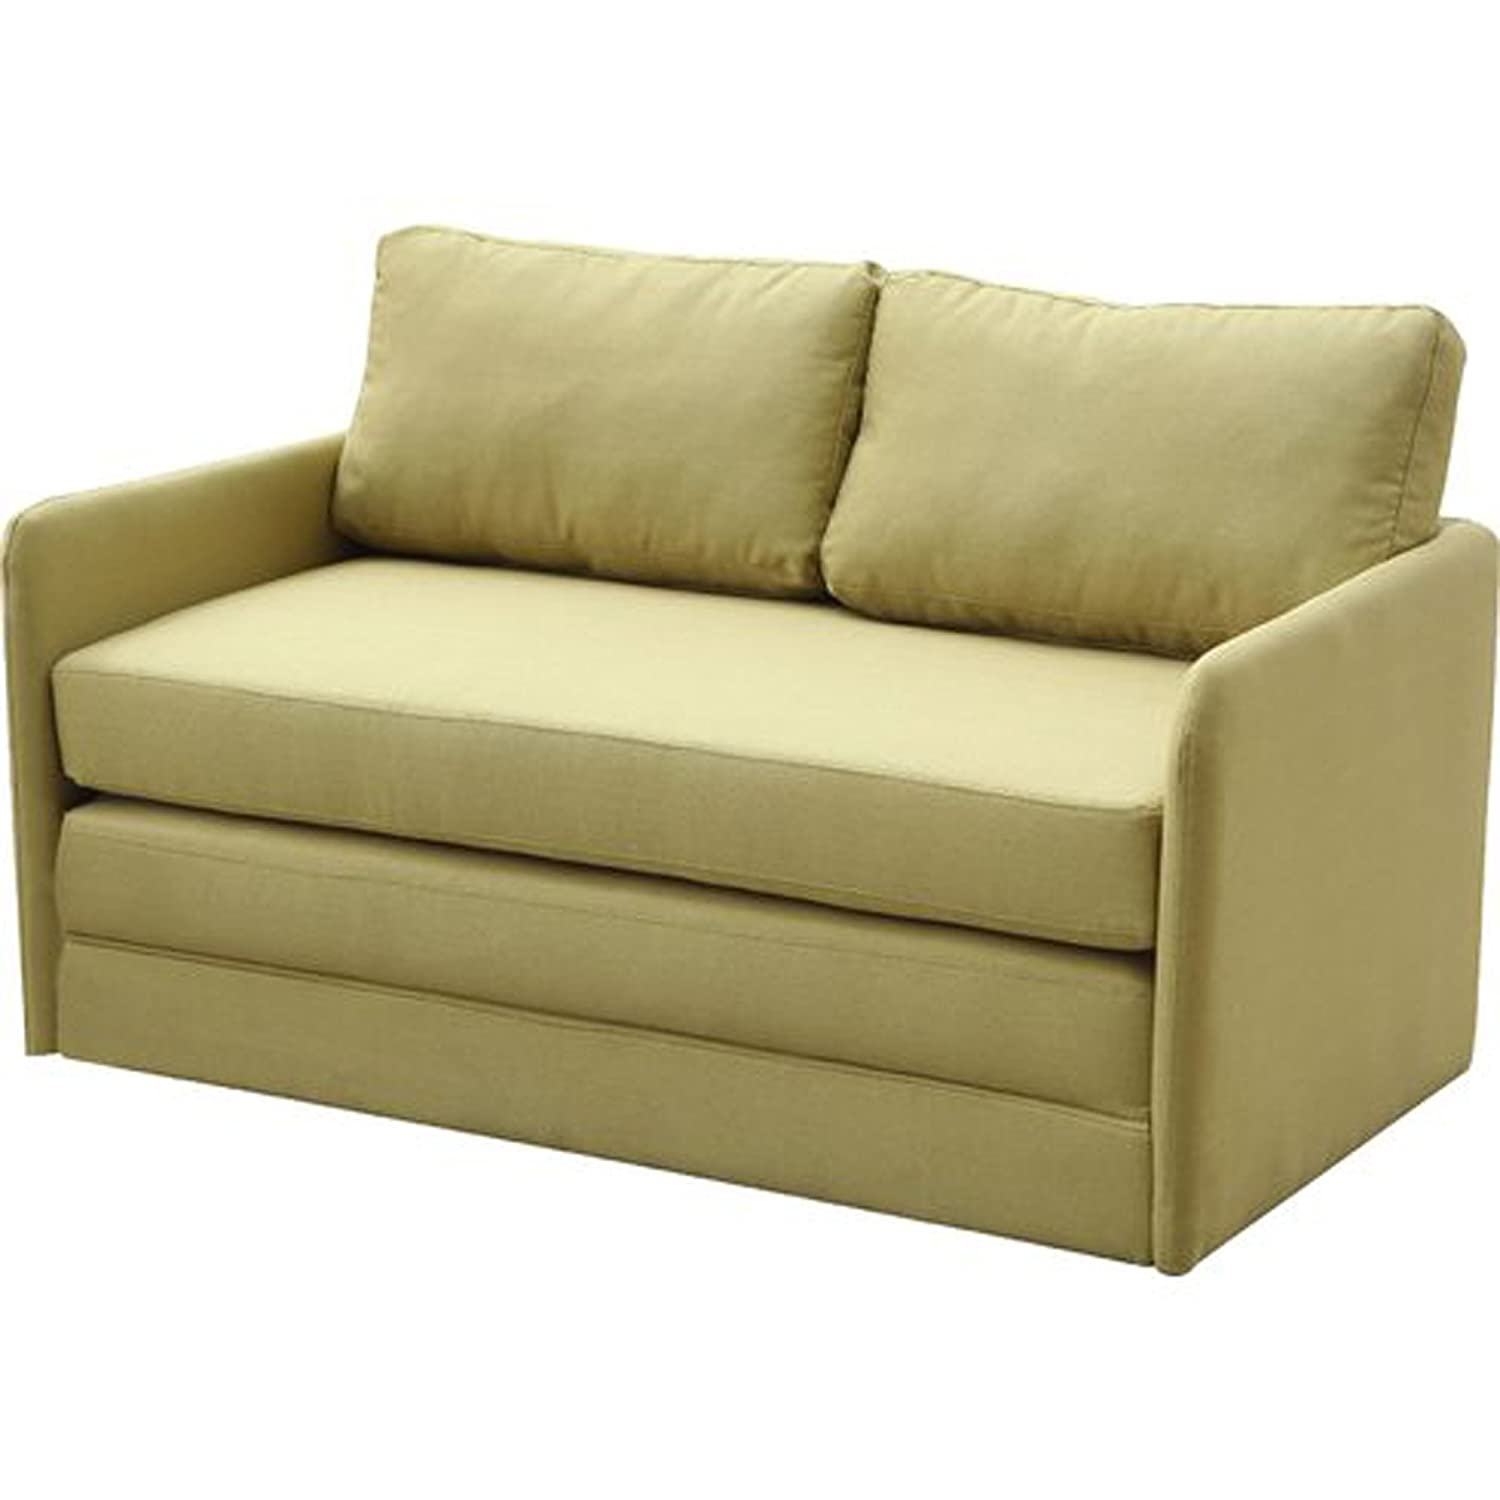 Amazon com sleeper loveseat convertible to full size small sofa bed contemporary upholstered two seat furniture yellow green kitchen dining